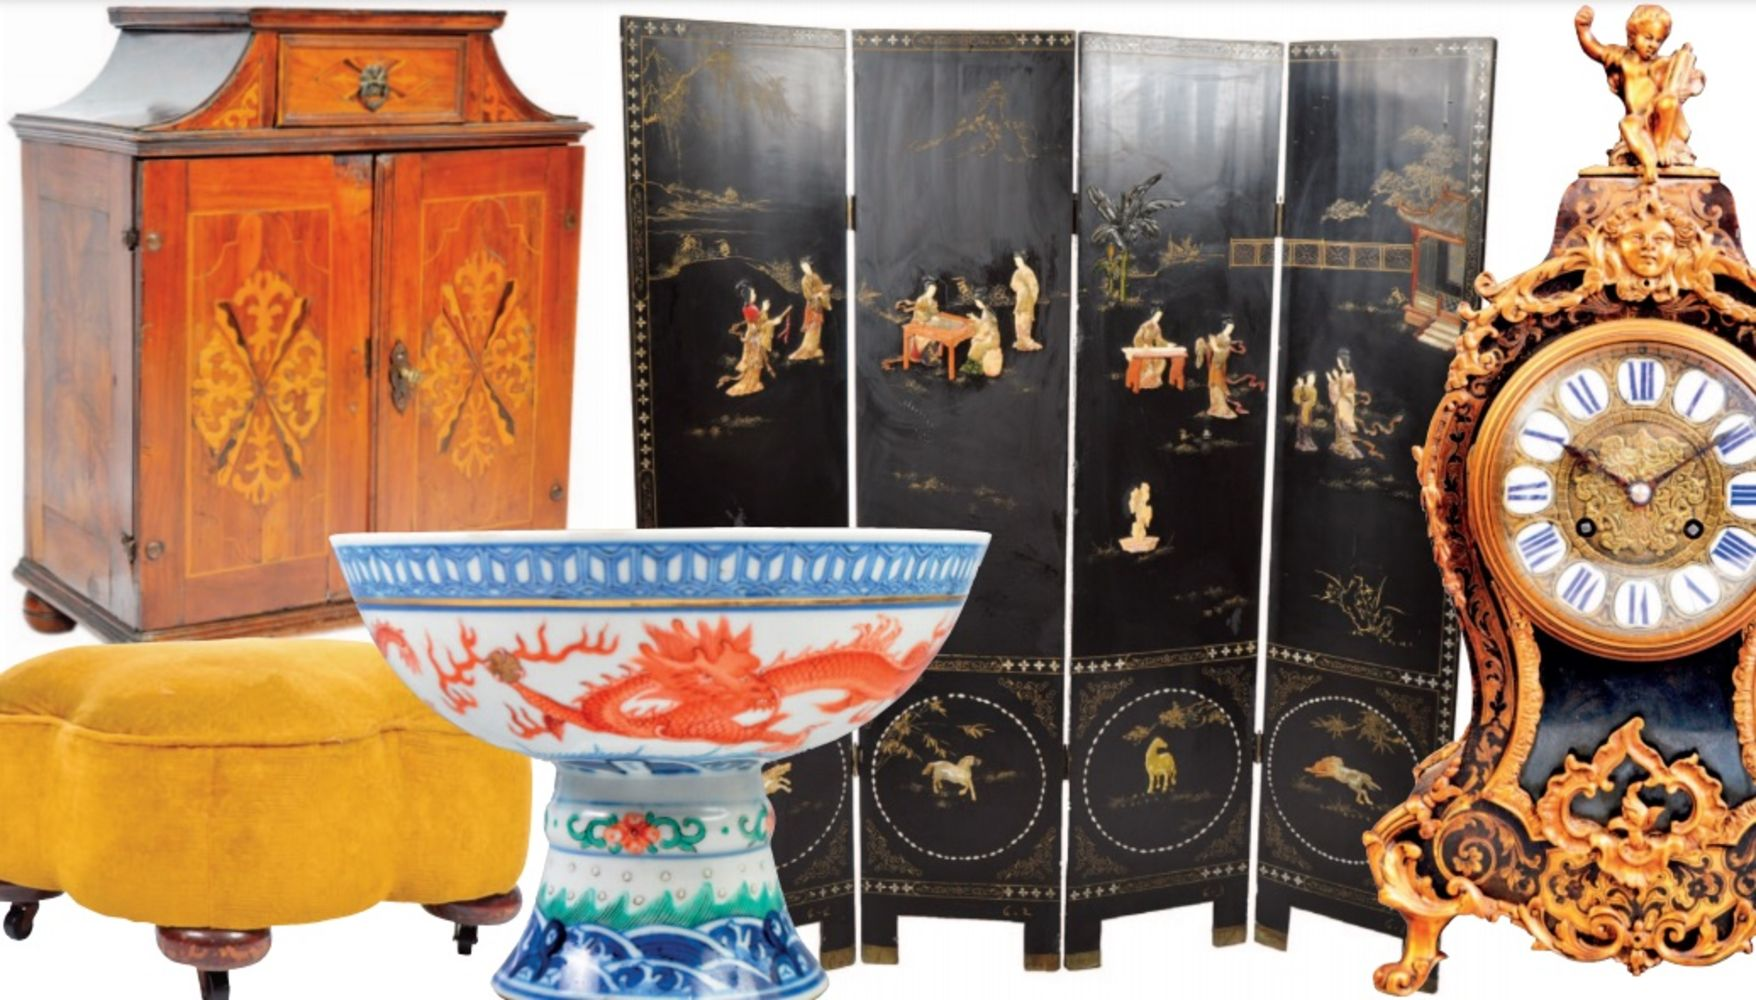 Online Fine Art & Antiques Auction - Worldwide Postage, Packing & Delivery Available On All Items